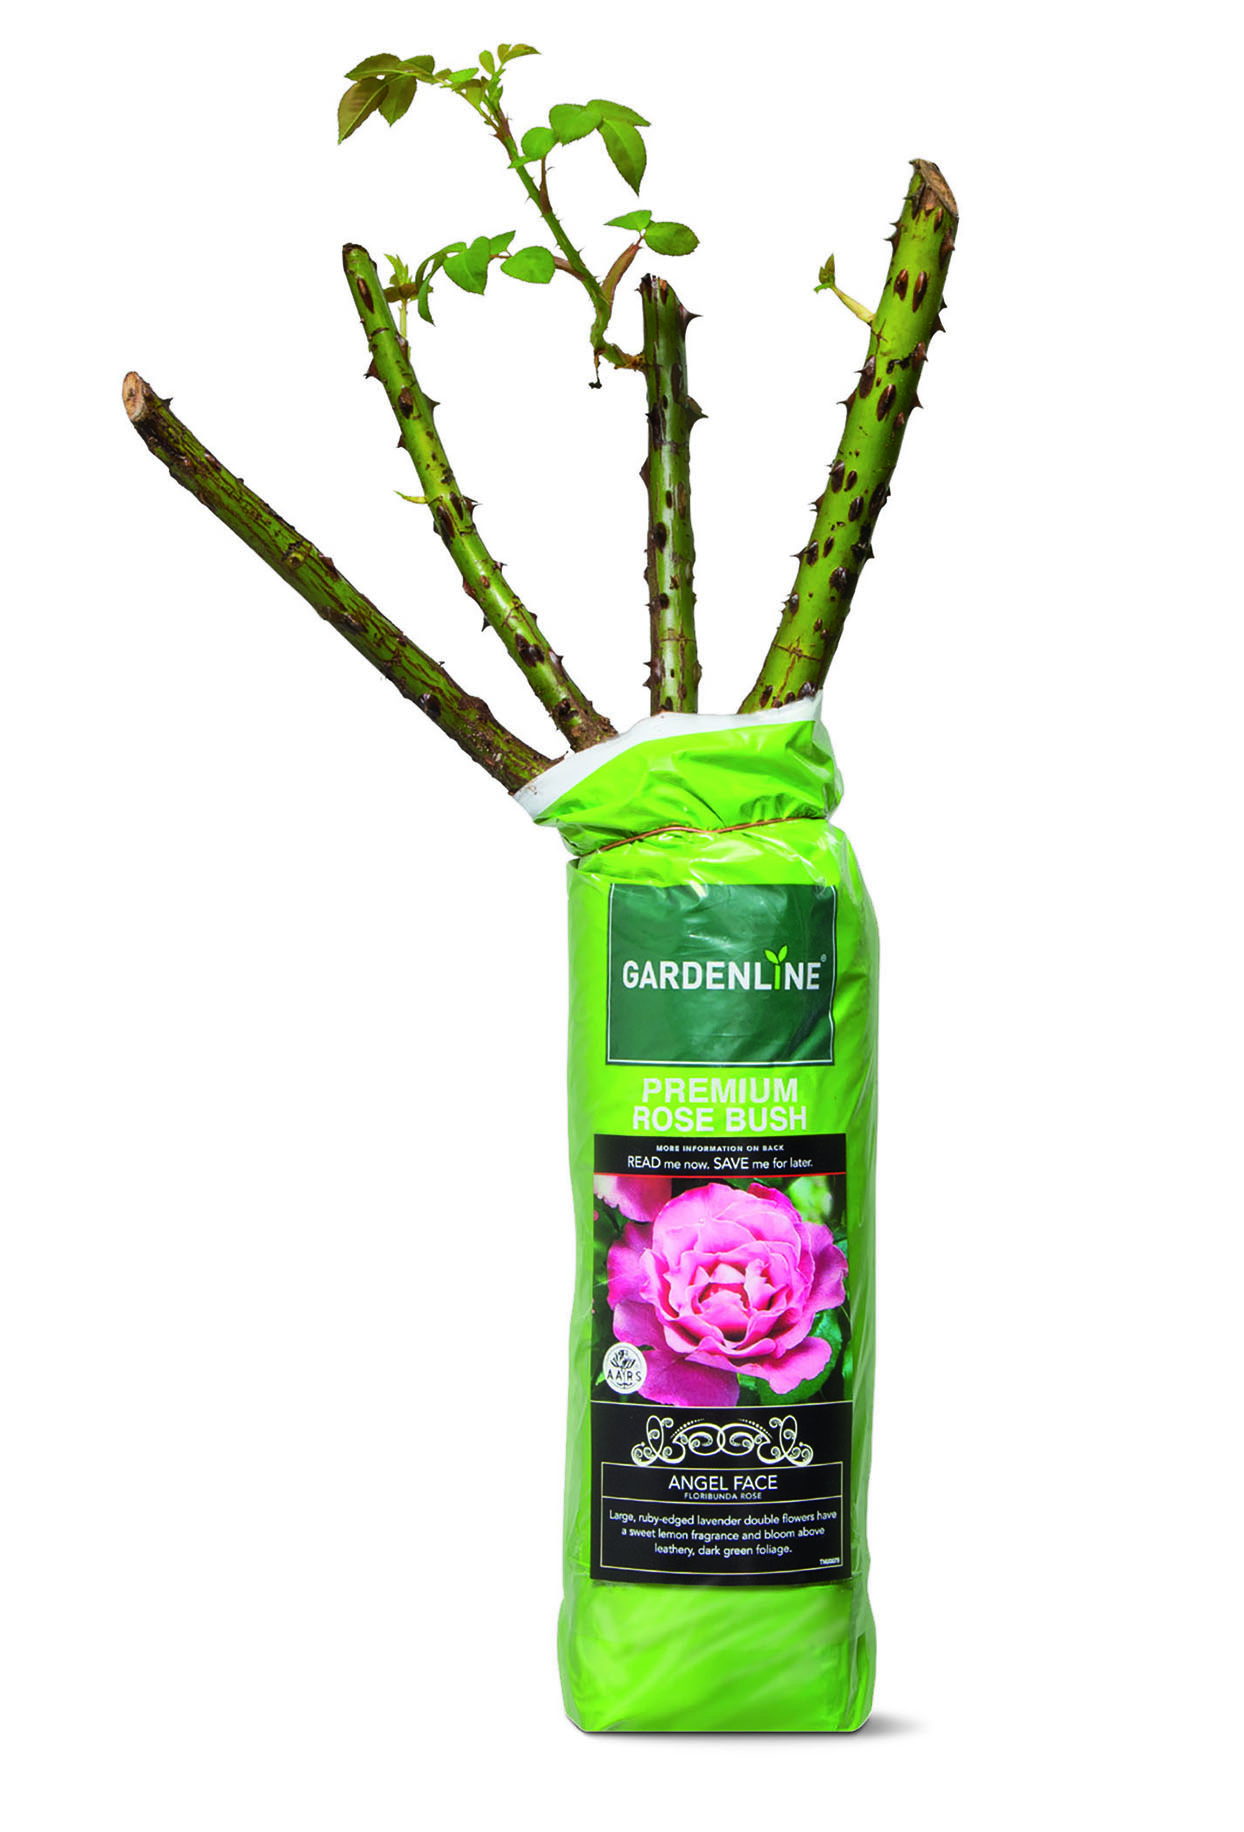 4 Affordable Aldi Gardening Products to Welcome Spring